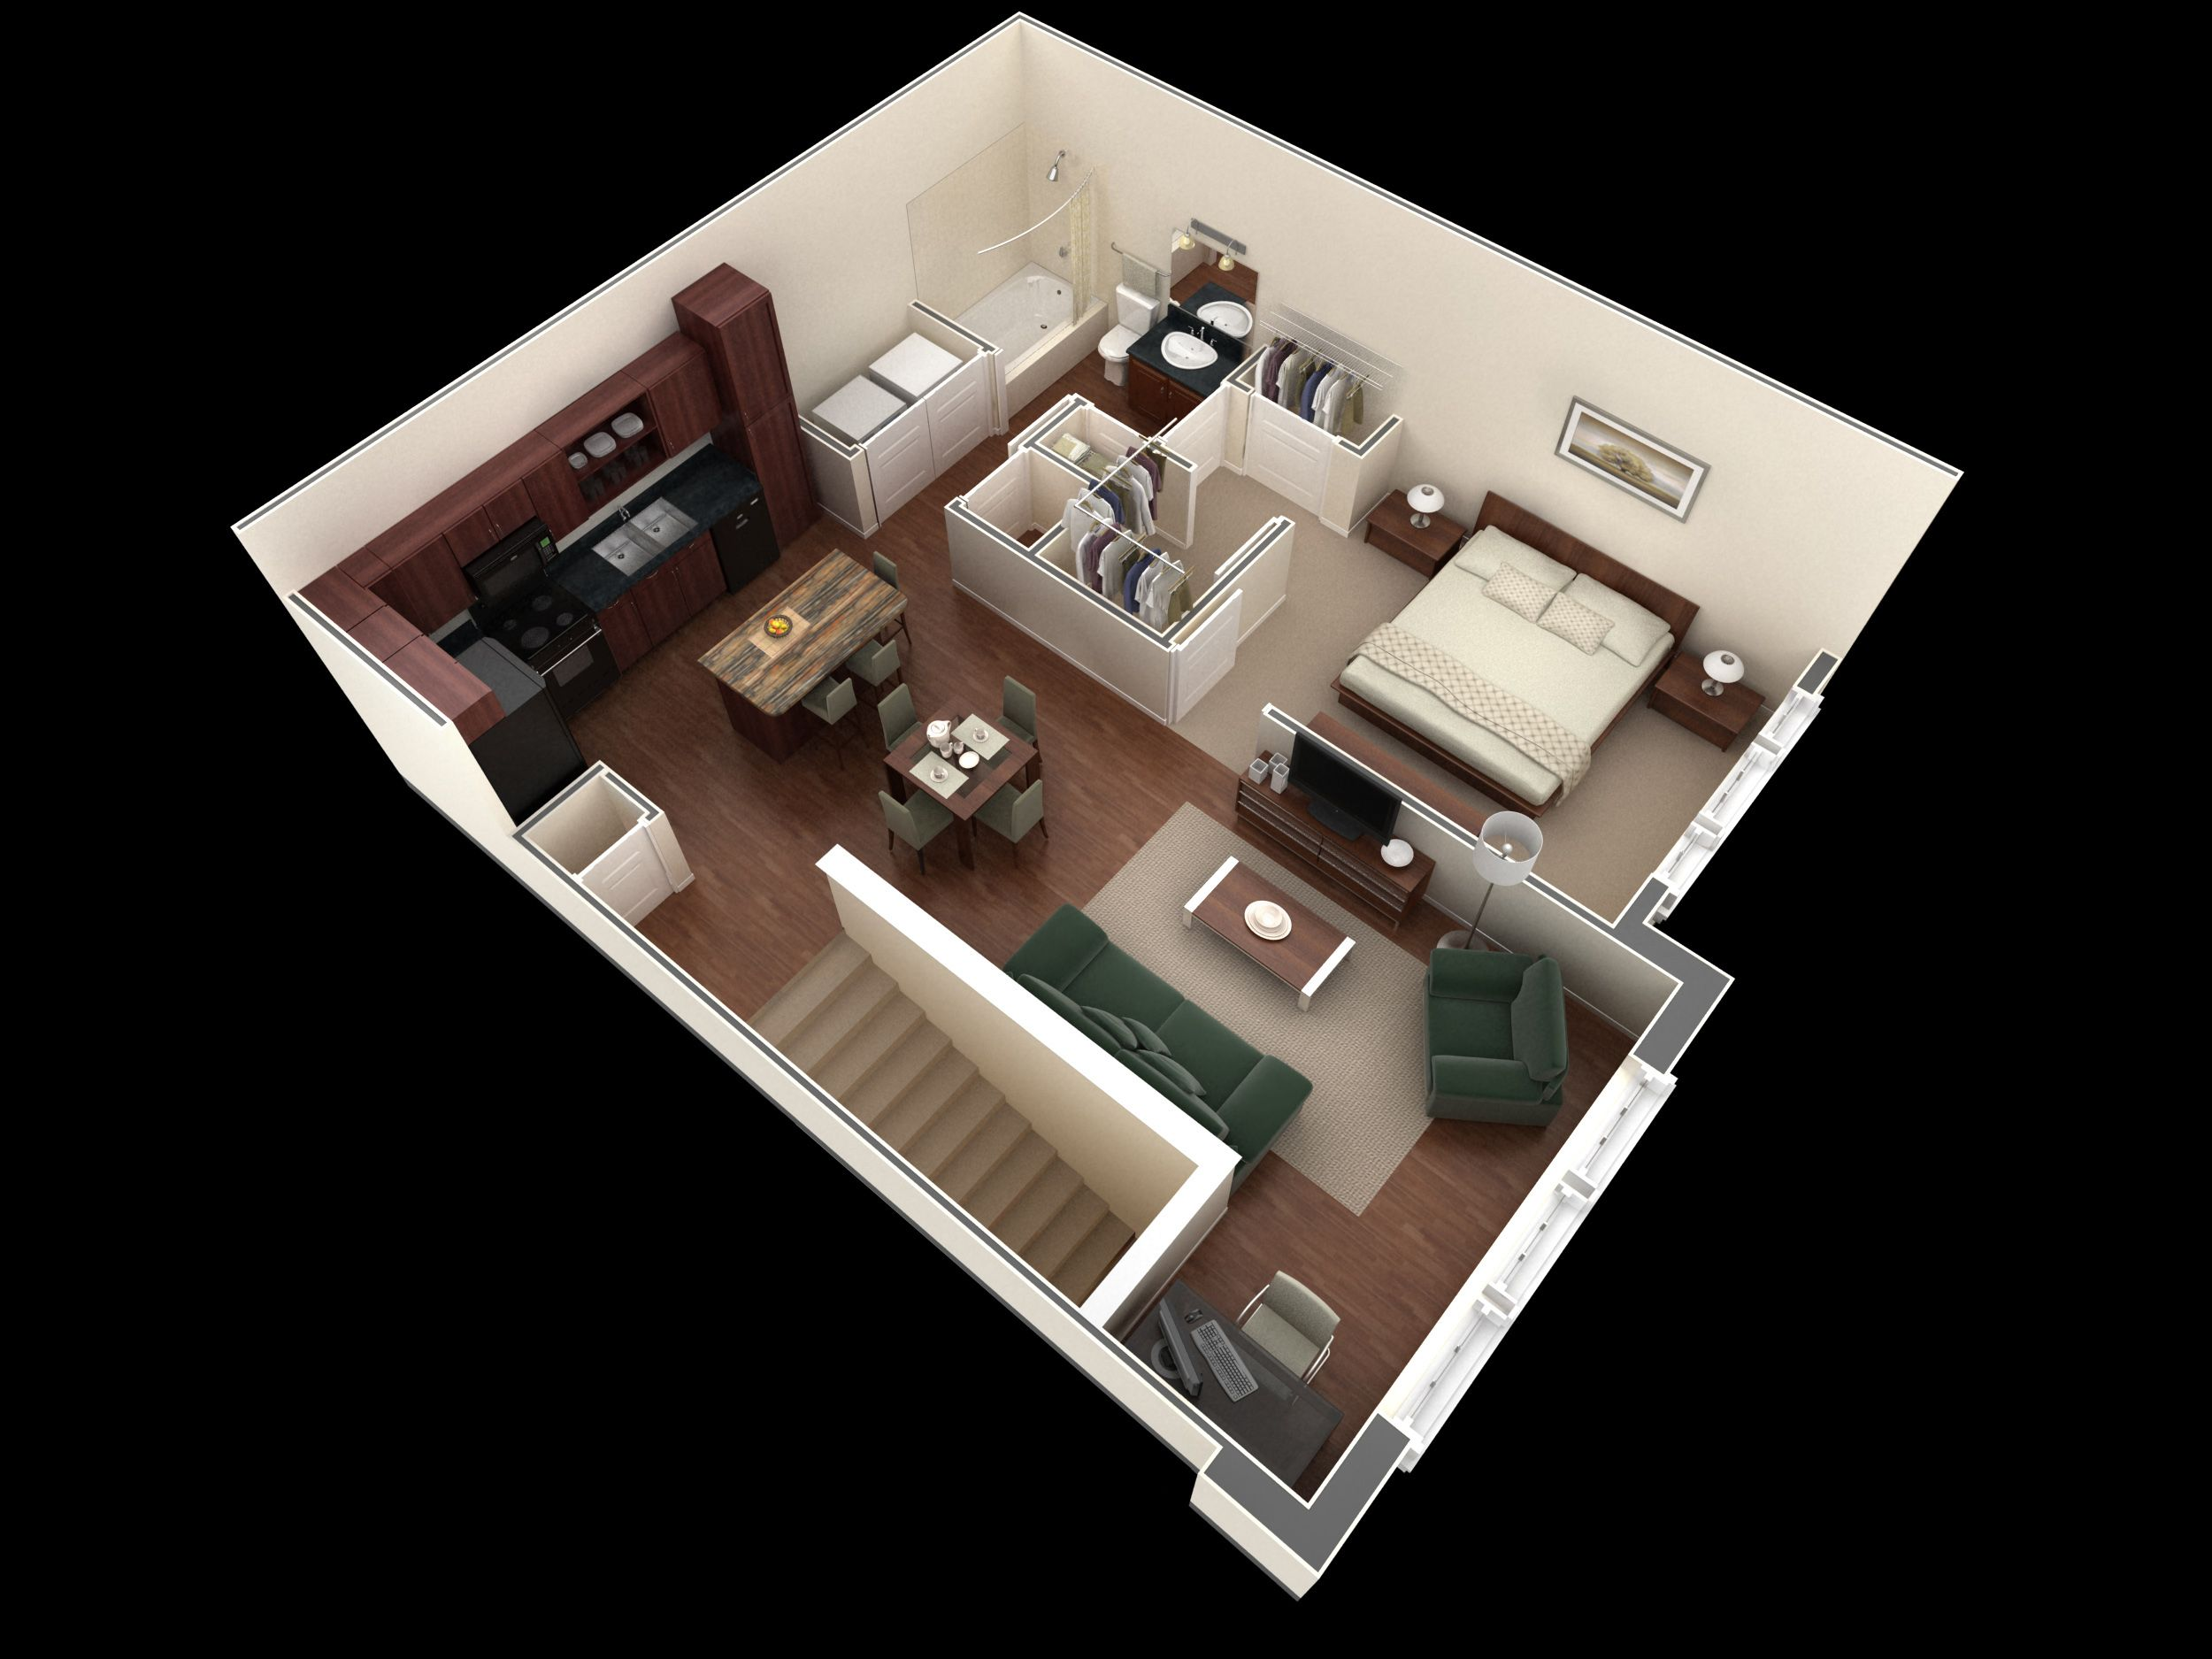 One Bedroom Apartment Plans And Designs Impressive 1 Bedroom Apartment  Designer Overlook This 1 Bedroom 1 Bath Decorating Inspiration